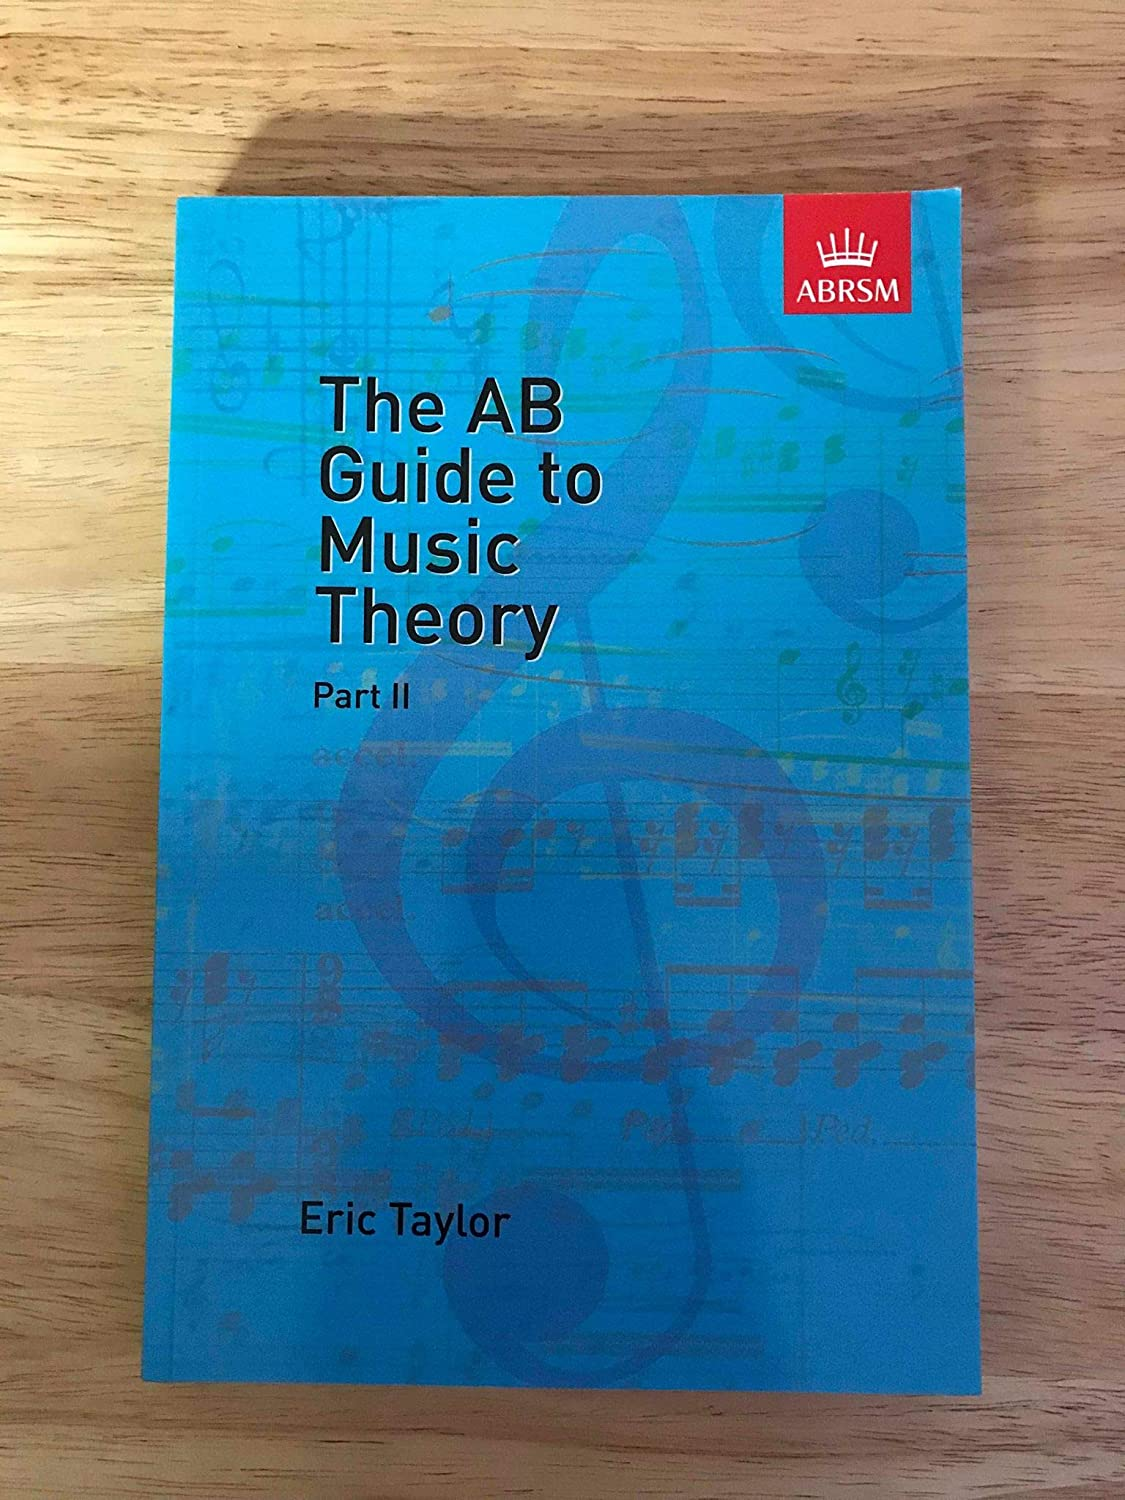 The AB Guide to Music Theory Part 2 ABRSM Eric Taylor SAME DAY DISPATCH